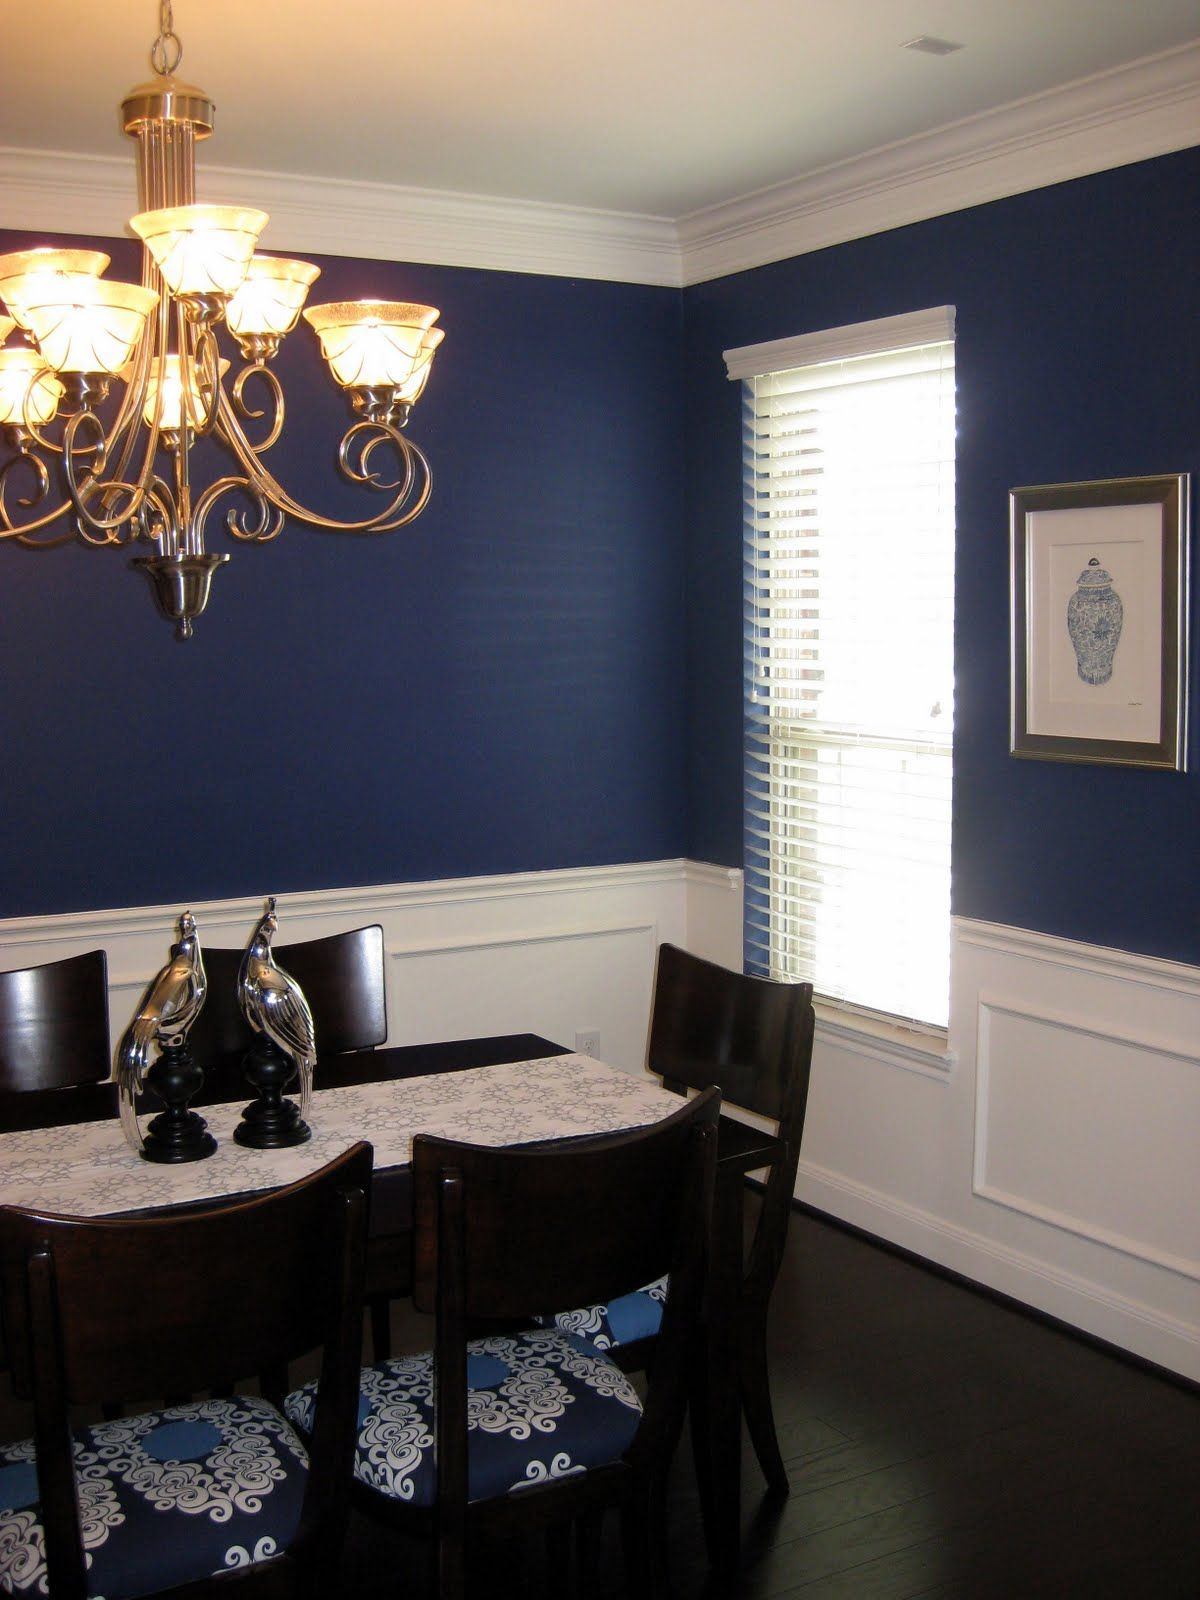 Great wall color contrast  Home Decor  Pinterest